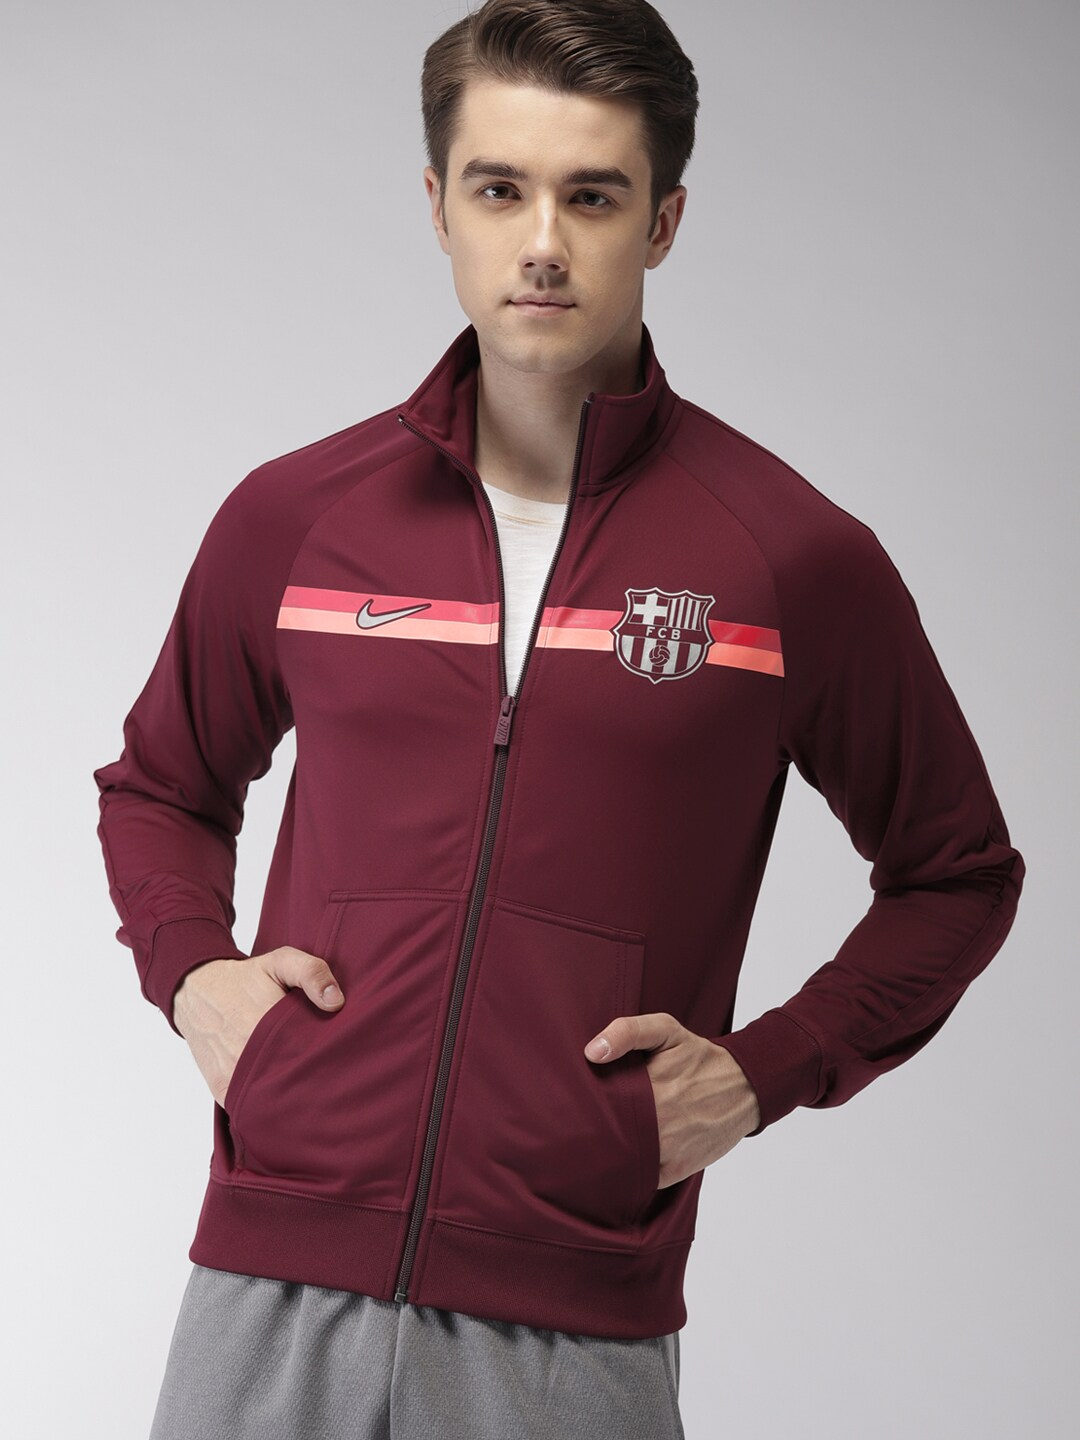 35c5b60c2 Nike Men Maroon FCB M NSW Sporty Jacket